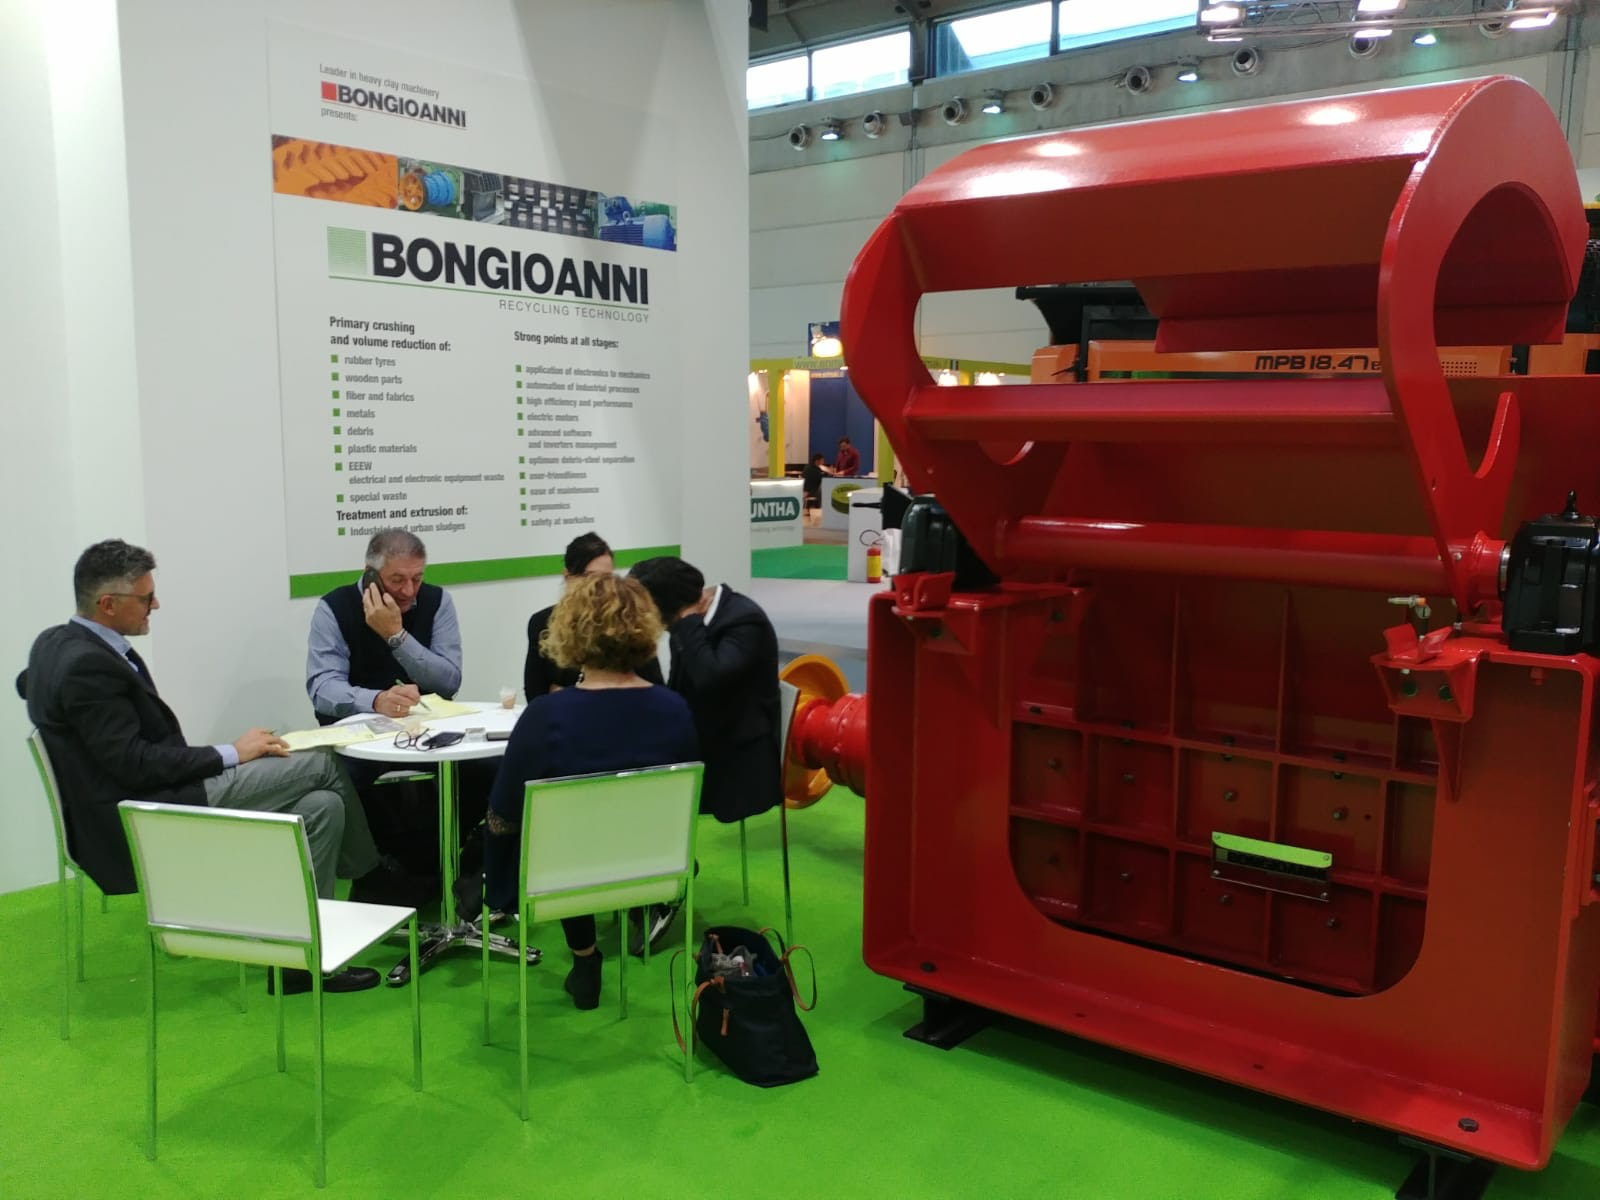 Bongioanni RecyclingTechnology